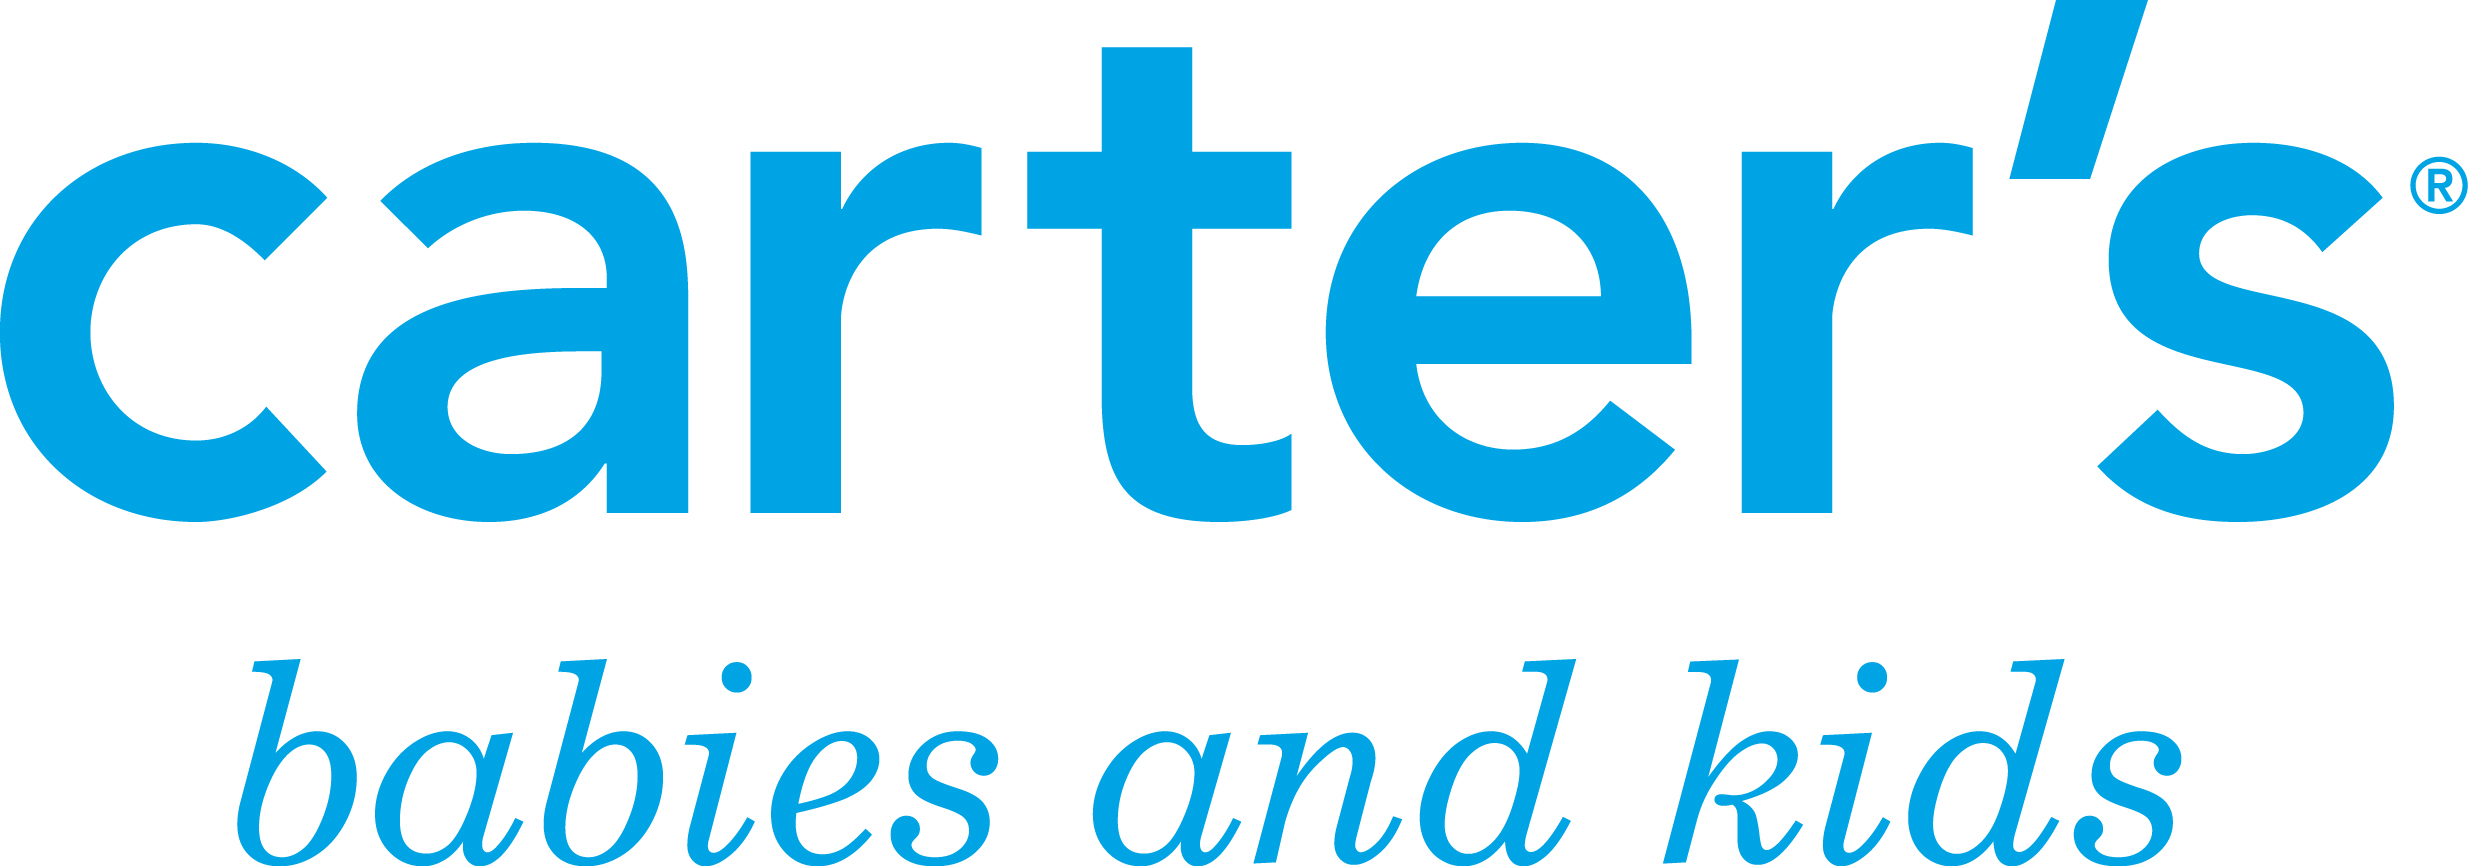 Carters Oshkosh Logo Carter's Clothing Logo